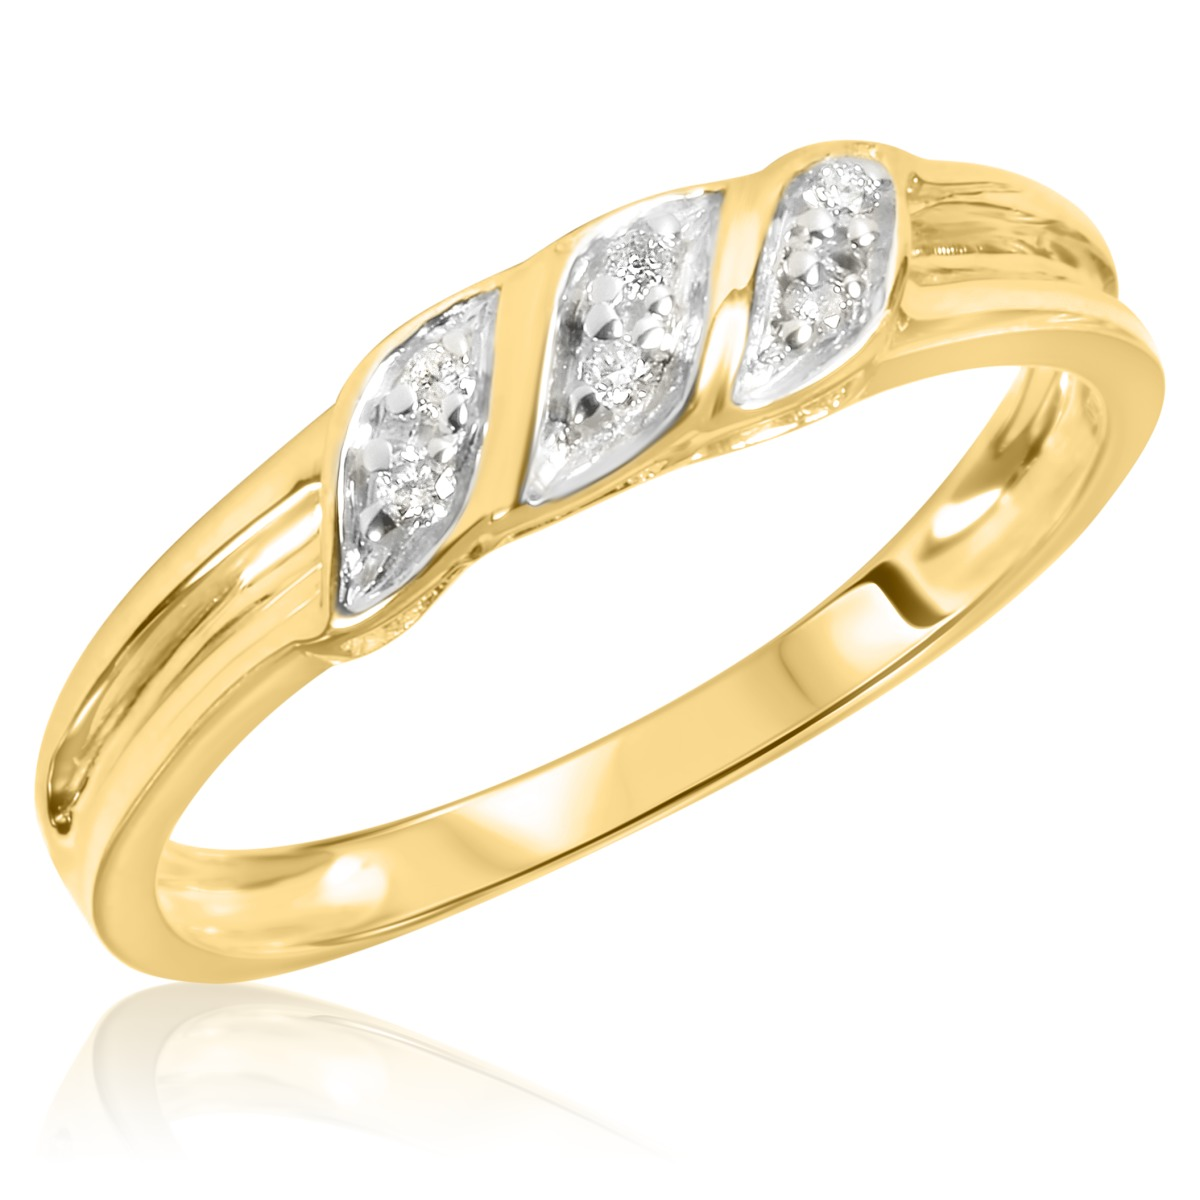 1 7 Carat TW Diamond Ladies And Mens Wedding Rings 14K Yellow Gold